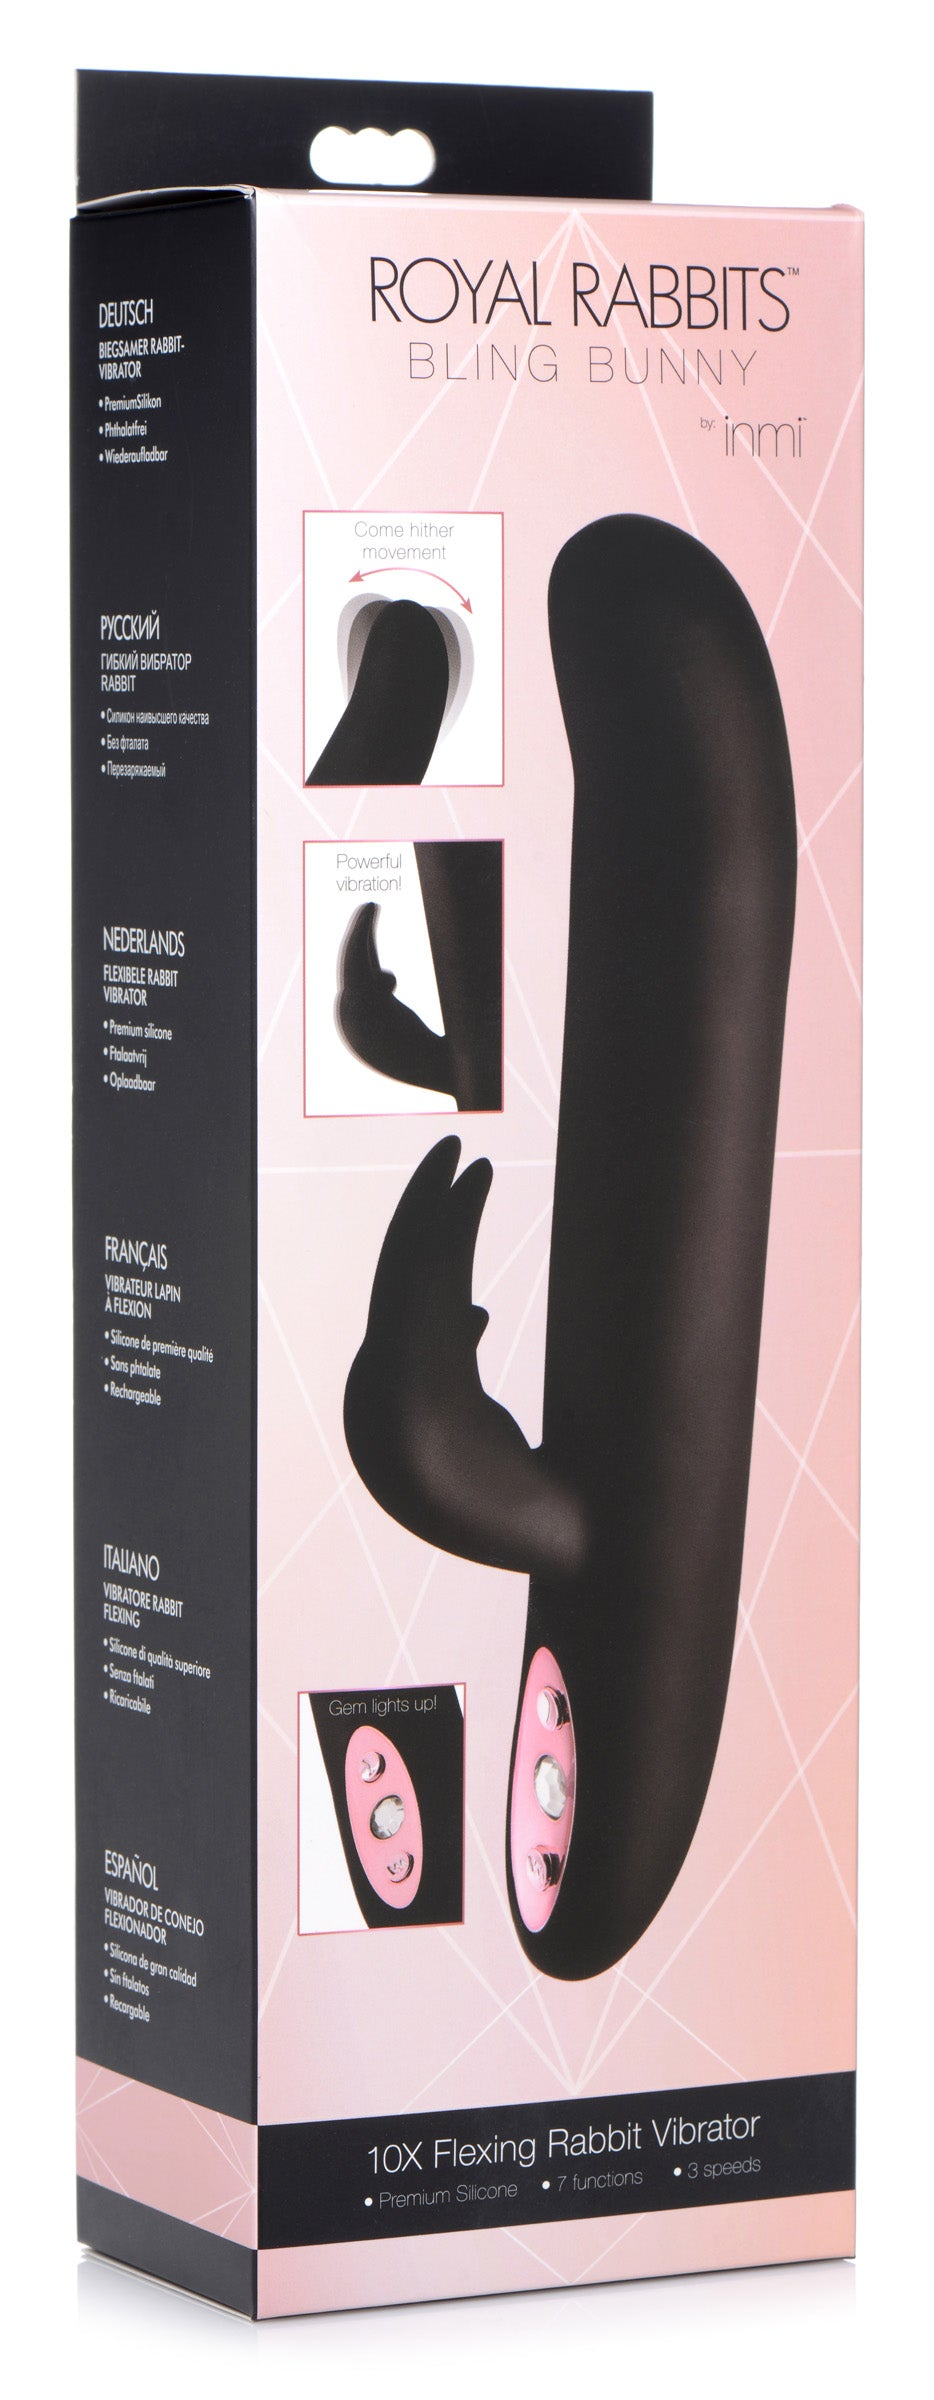 Bling Bunny 10x Flexing Silicone Rabbit Vibrator